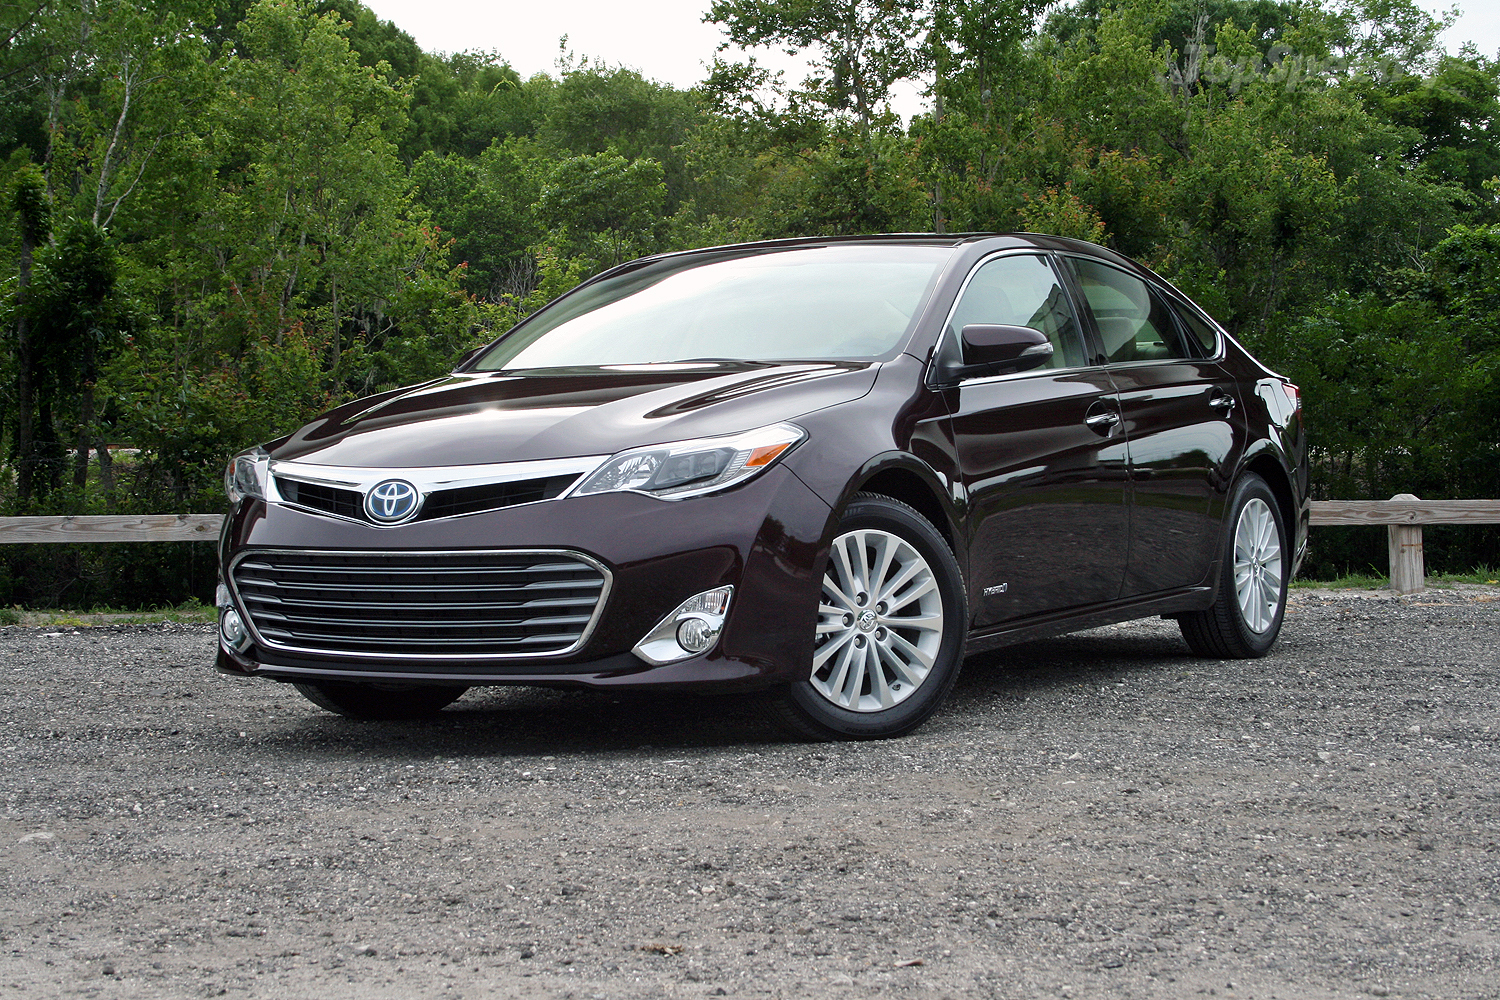 2015 toyota avalon hybrid driven picture 632294 car review top speed. Black Bedroom Furniture Sets. Home Design Ideas